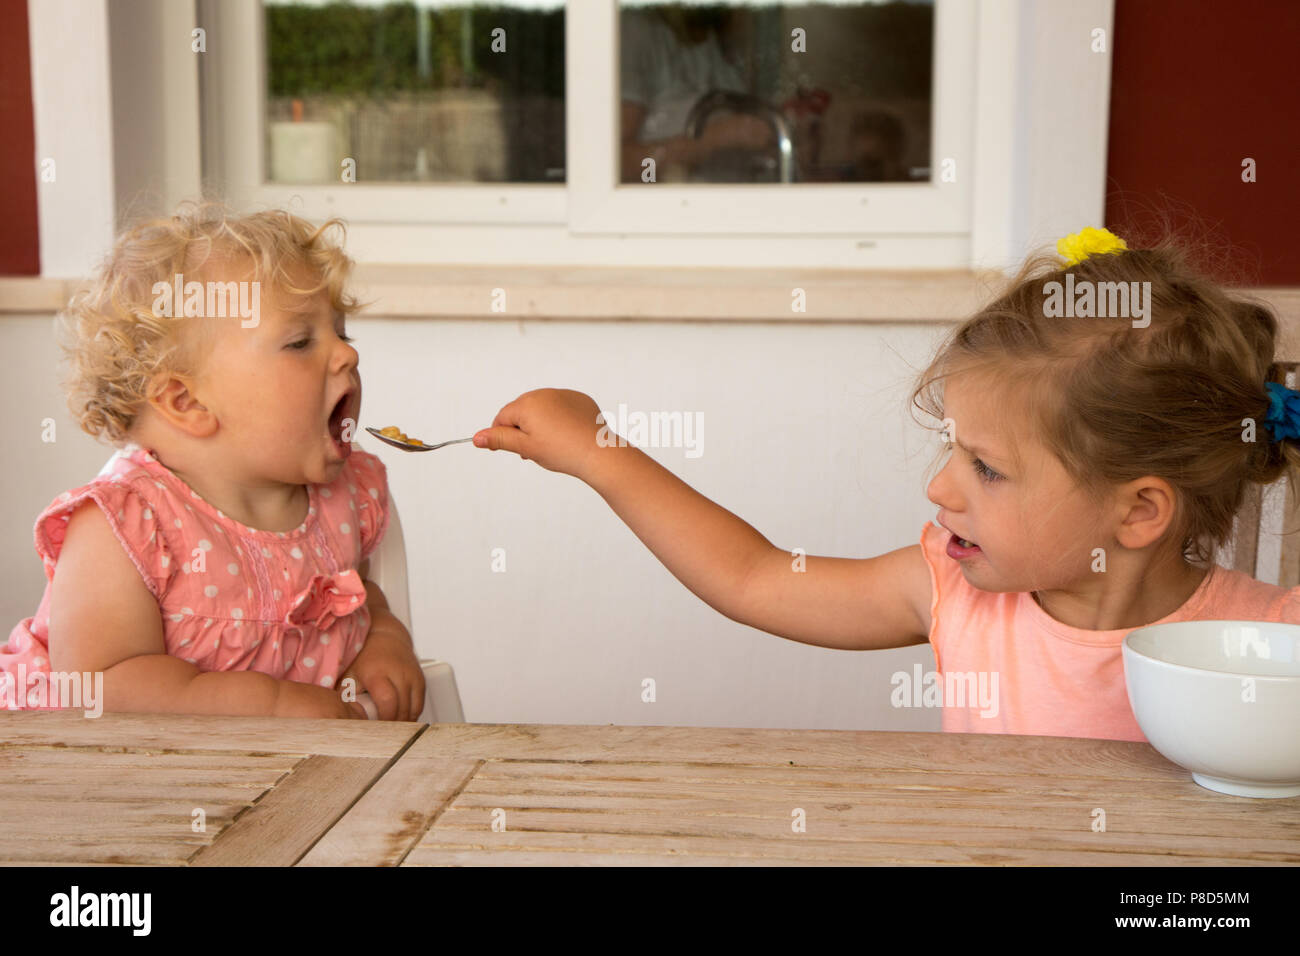 A two year old girl is feeding her younger sister breakfast cereal.The elder girl is 2 and a half and the younger 13 months. - Stock Image